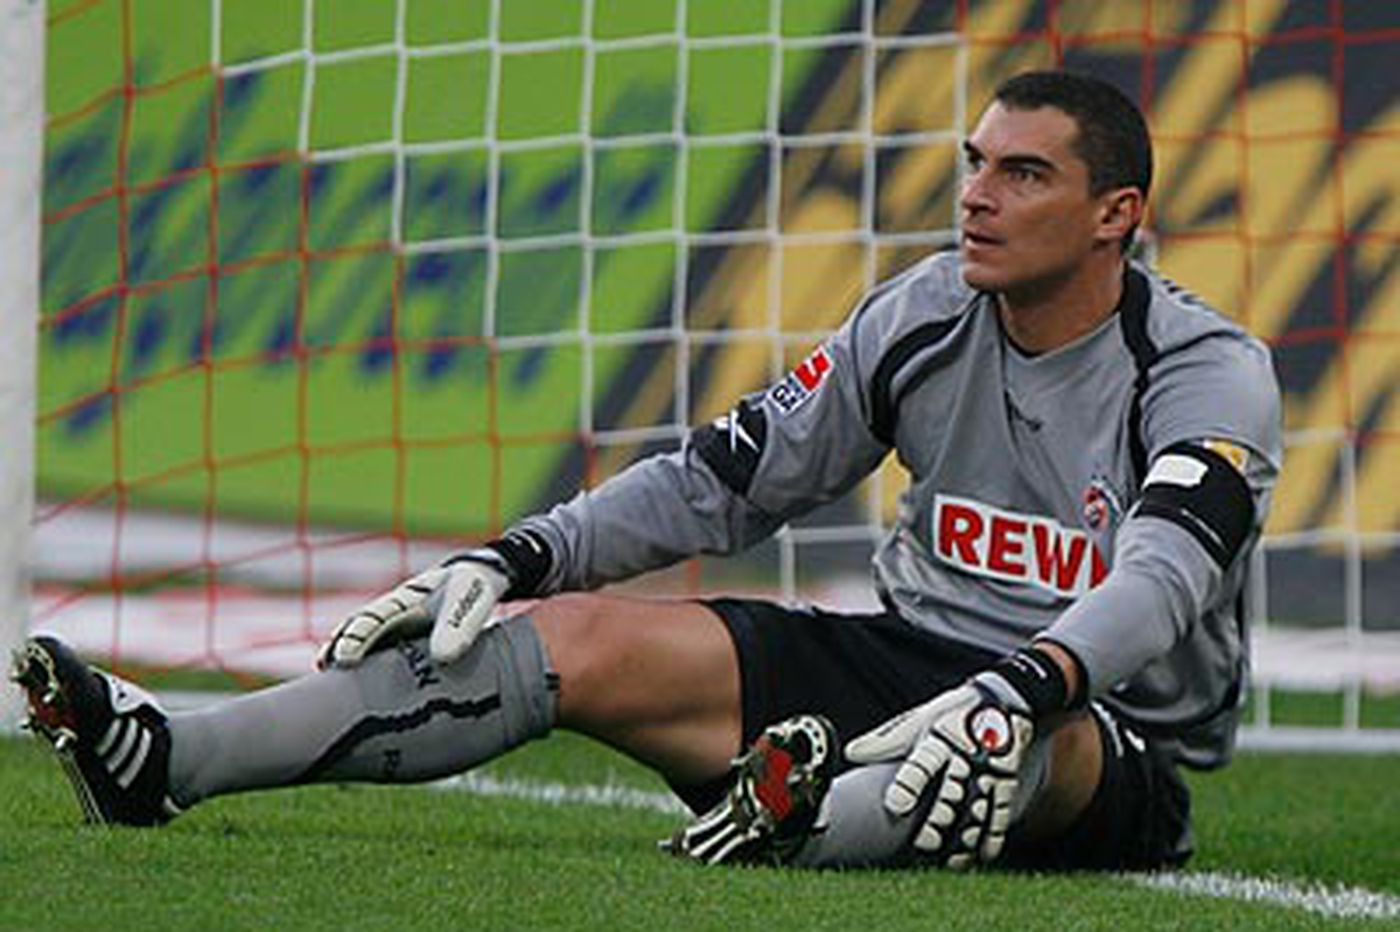 Source: goalie Mondragon set to join Union